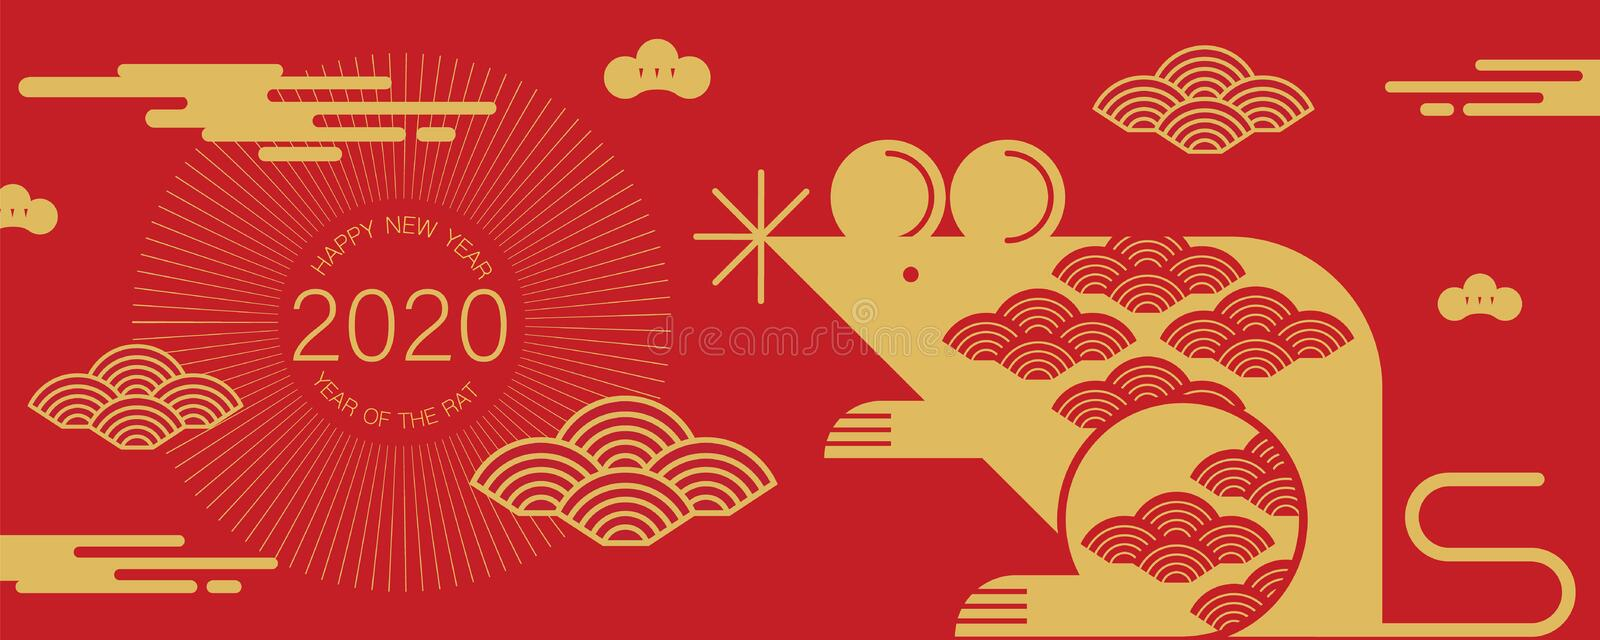 Happy new year, 2020, Chinese new year greetings, Year of the Rat , fortune vector illustration